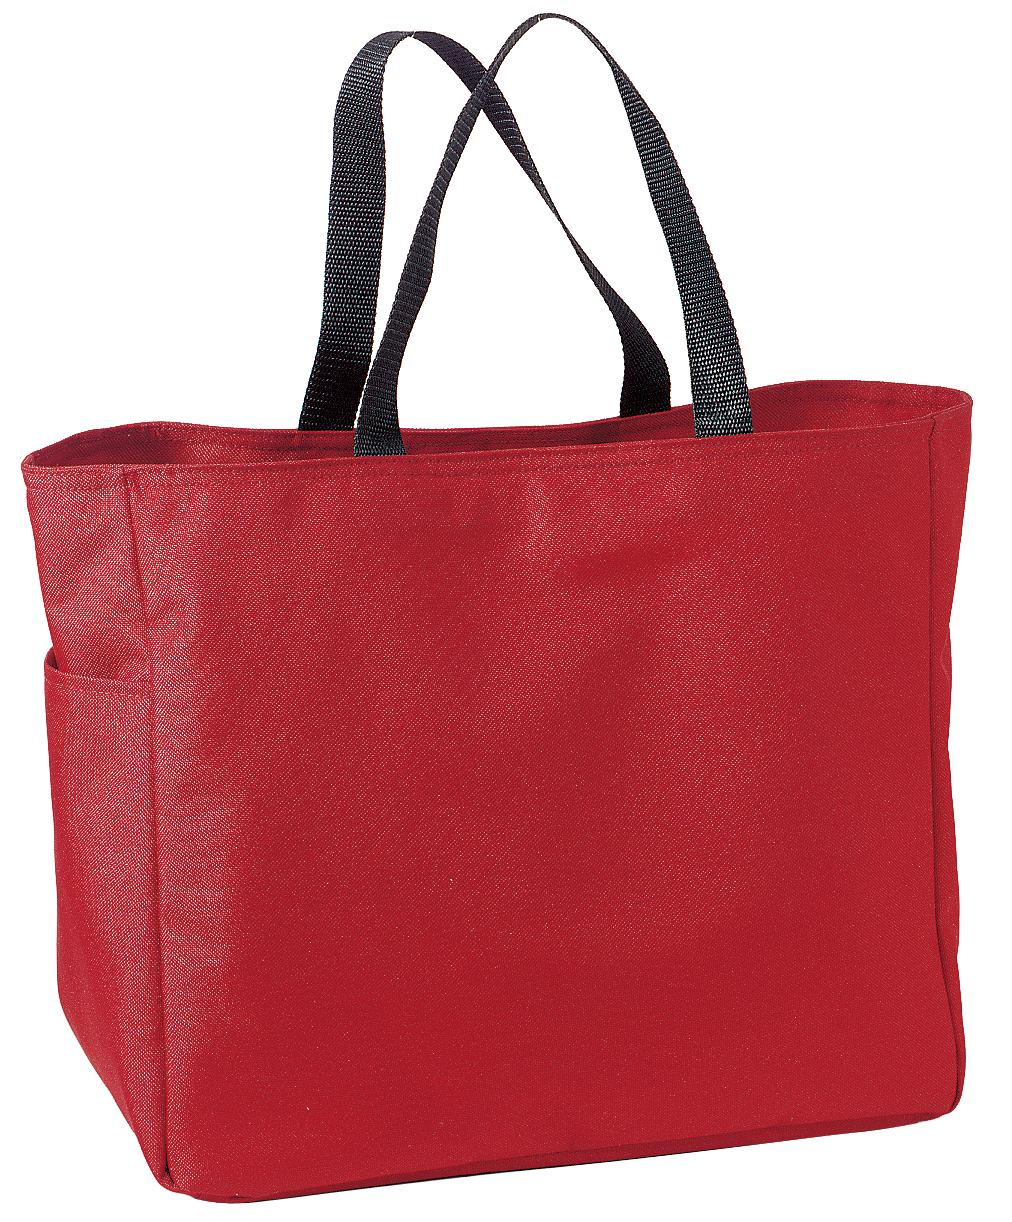 Port Authority ®  -  Essential Tote.  B0750 - Red